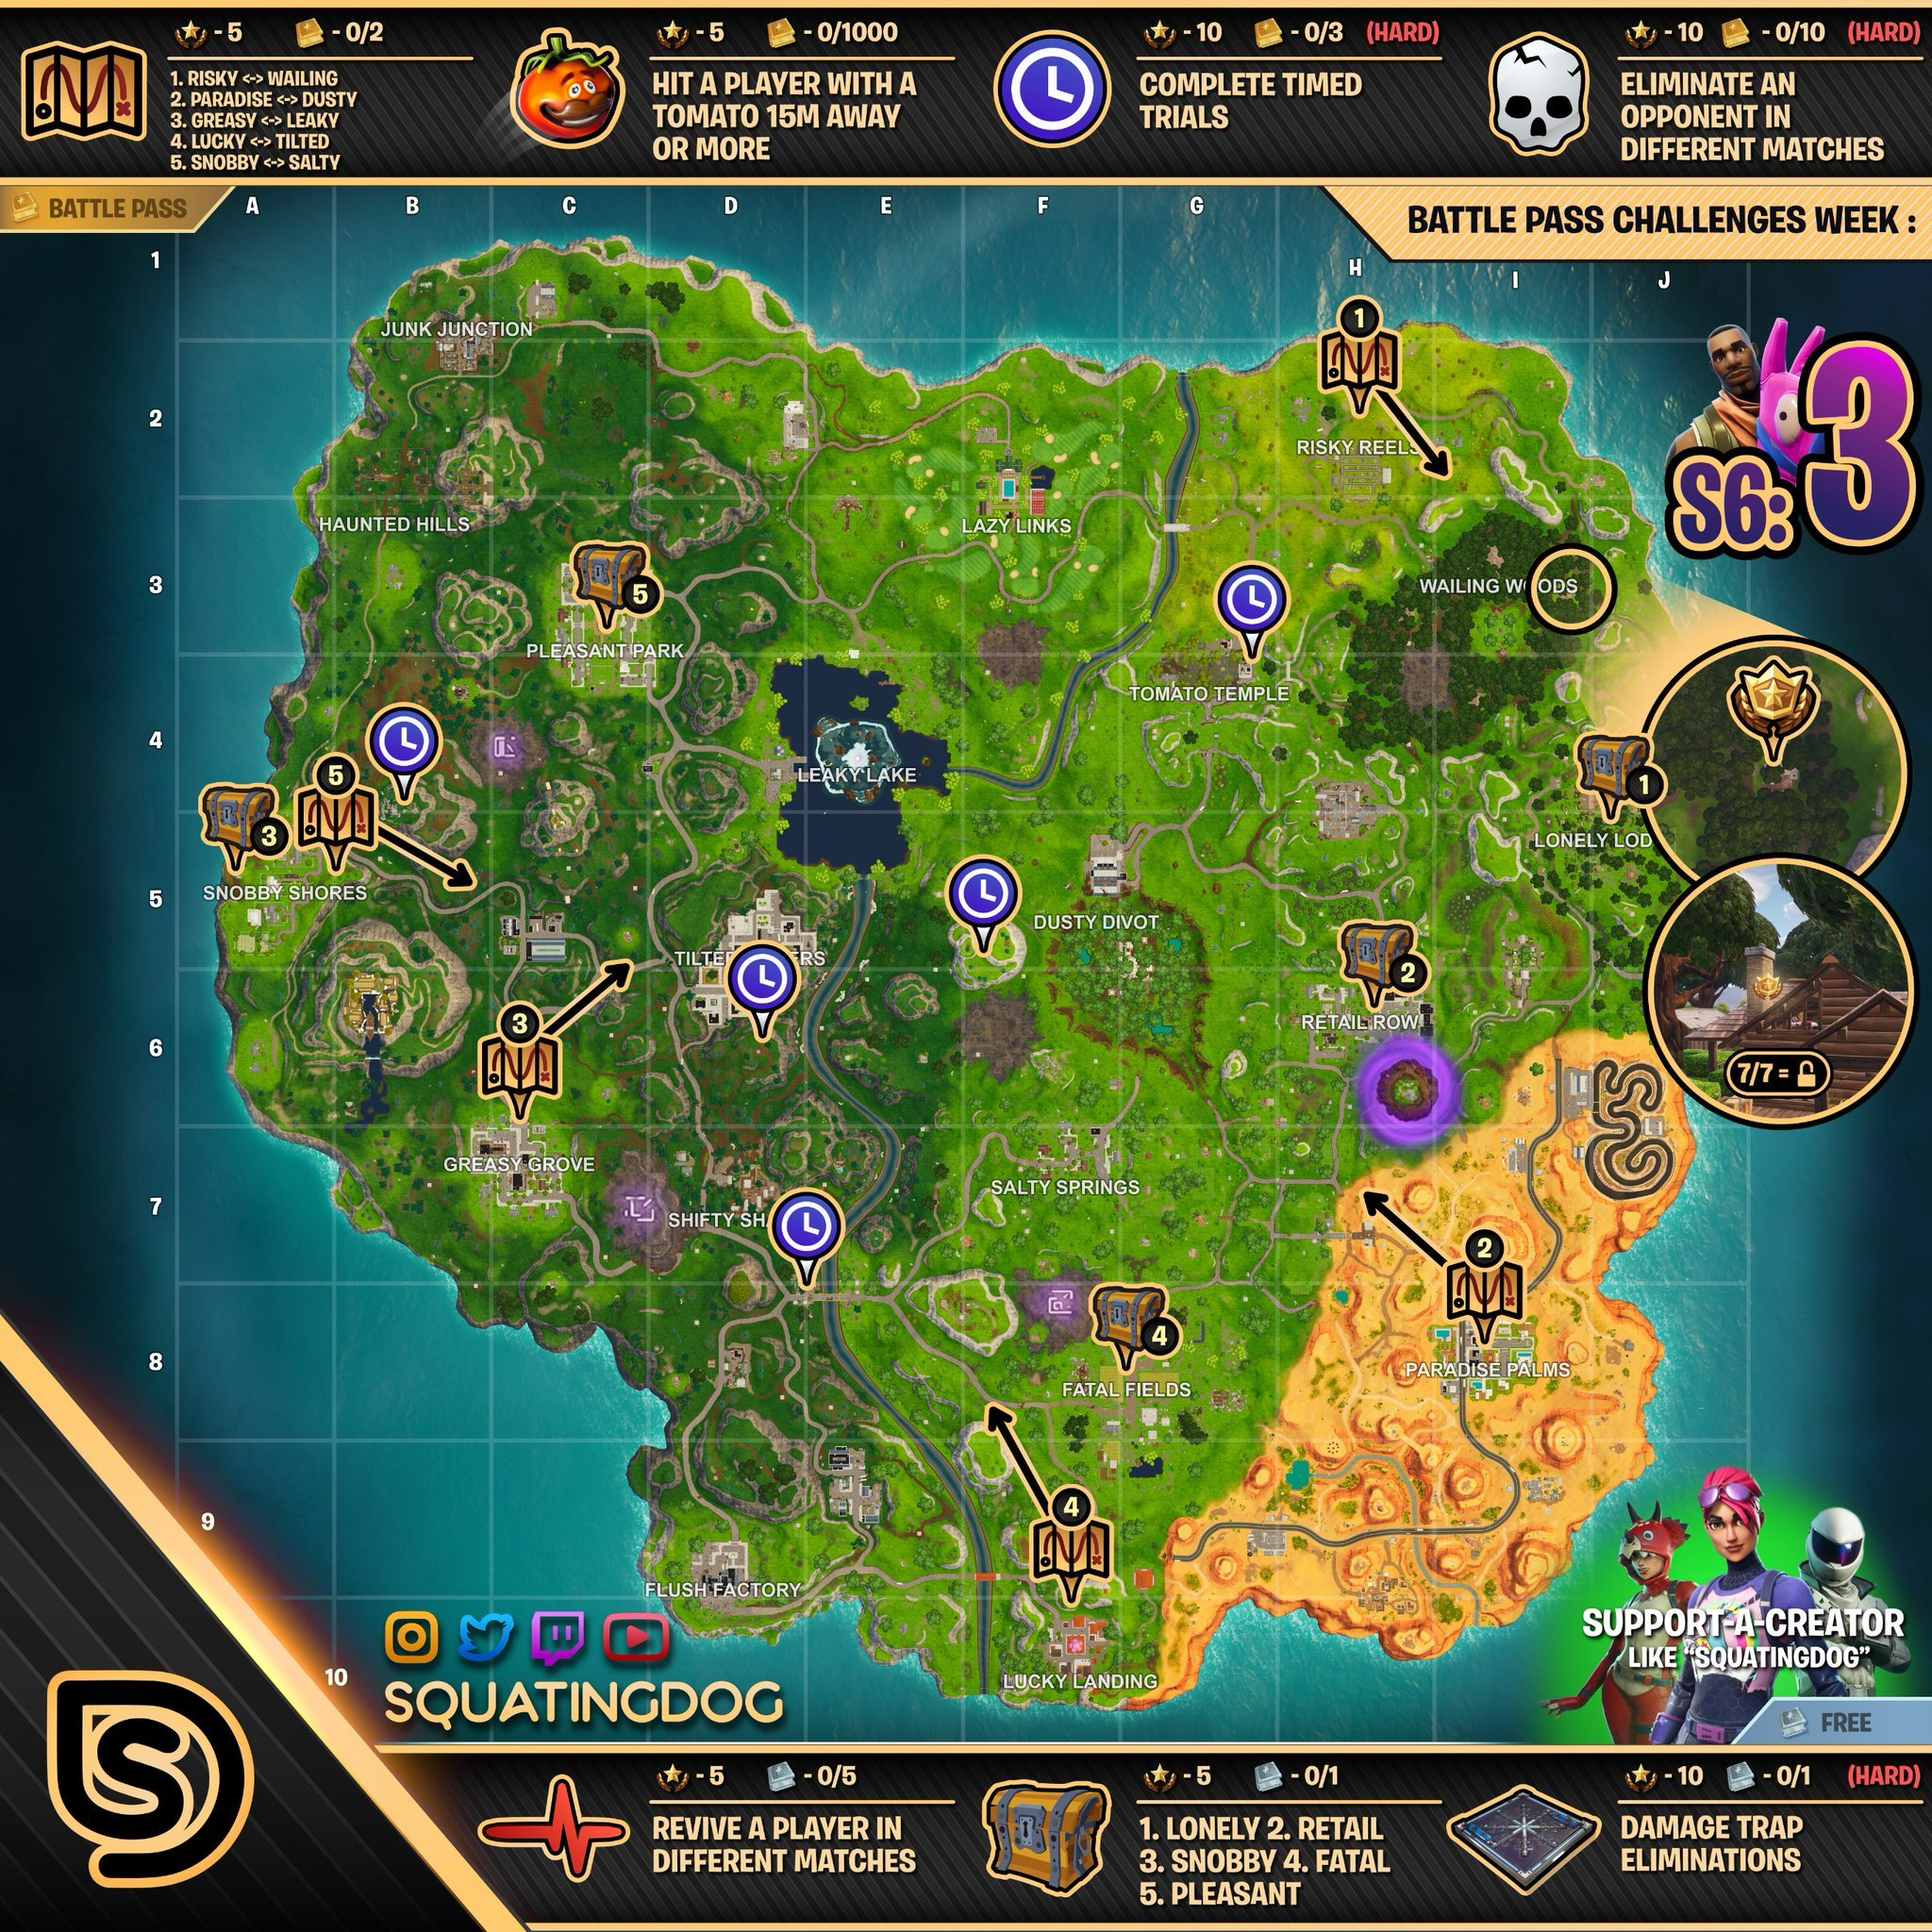 Cheat Sheet Map For Fortnite Season 6 Week 3 Challenges Fortnite